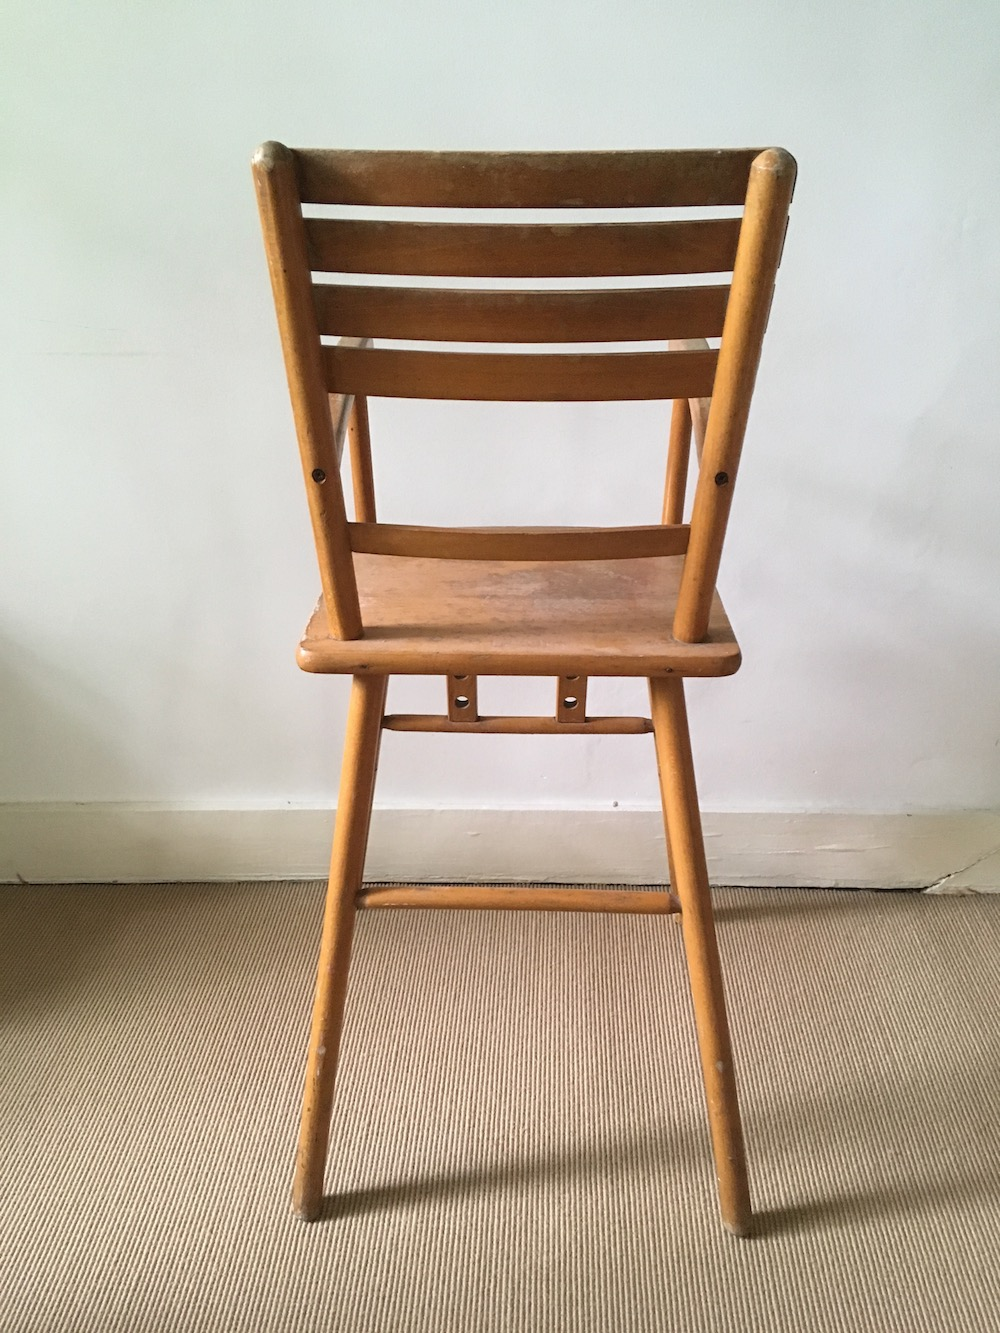 vintage chair, wooden chair for children, high chair, high chair for child, vintage high chair